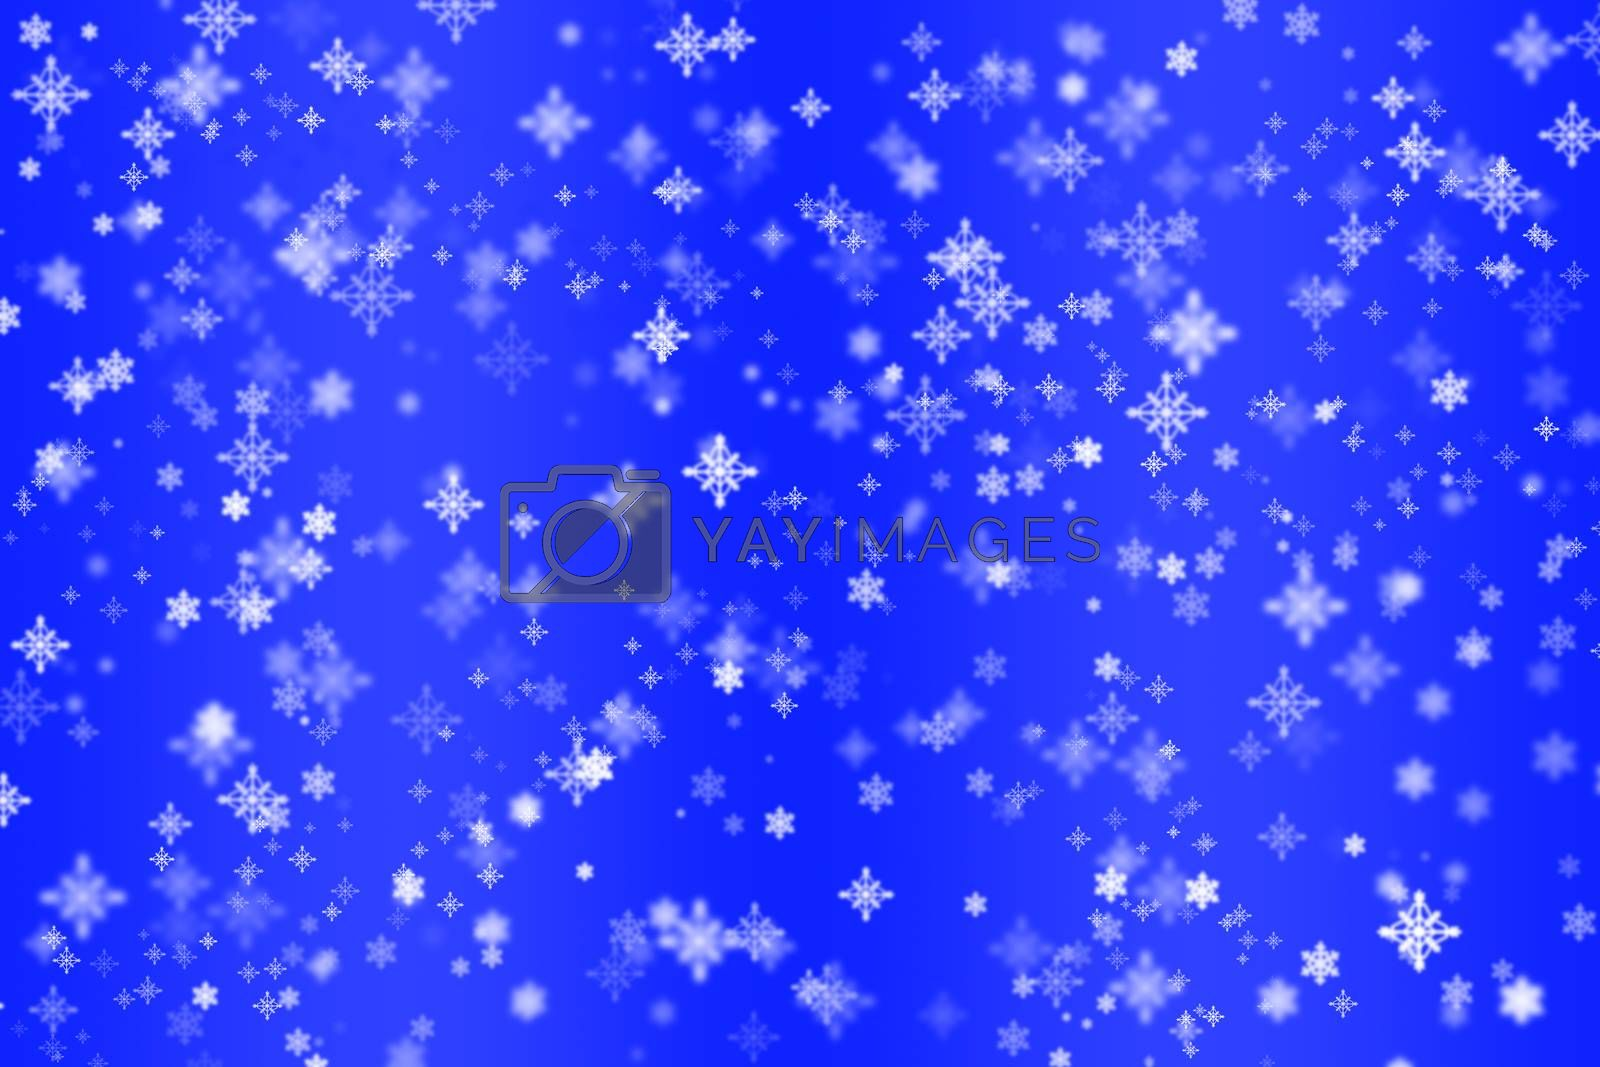 Christmas screensaver, background for Christmas and new Year greetings, blue background